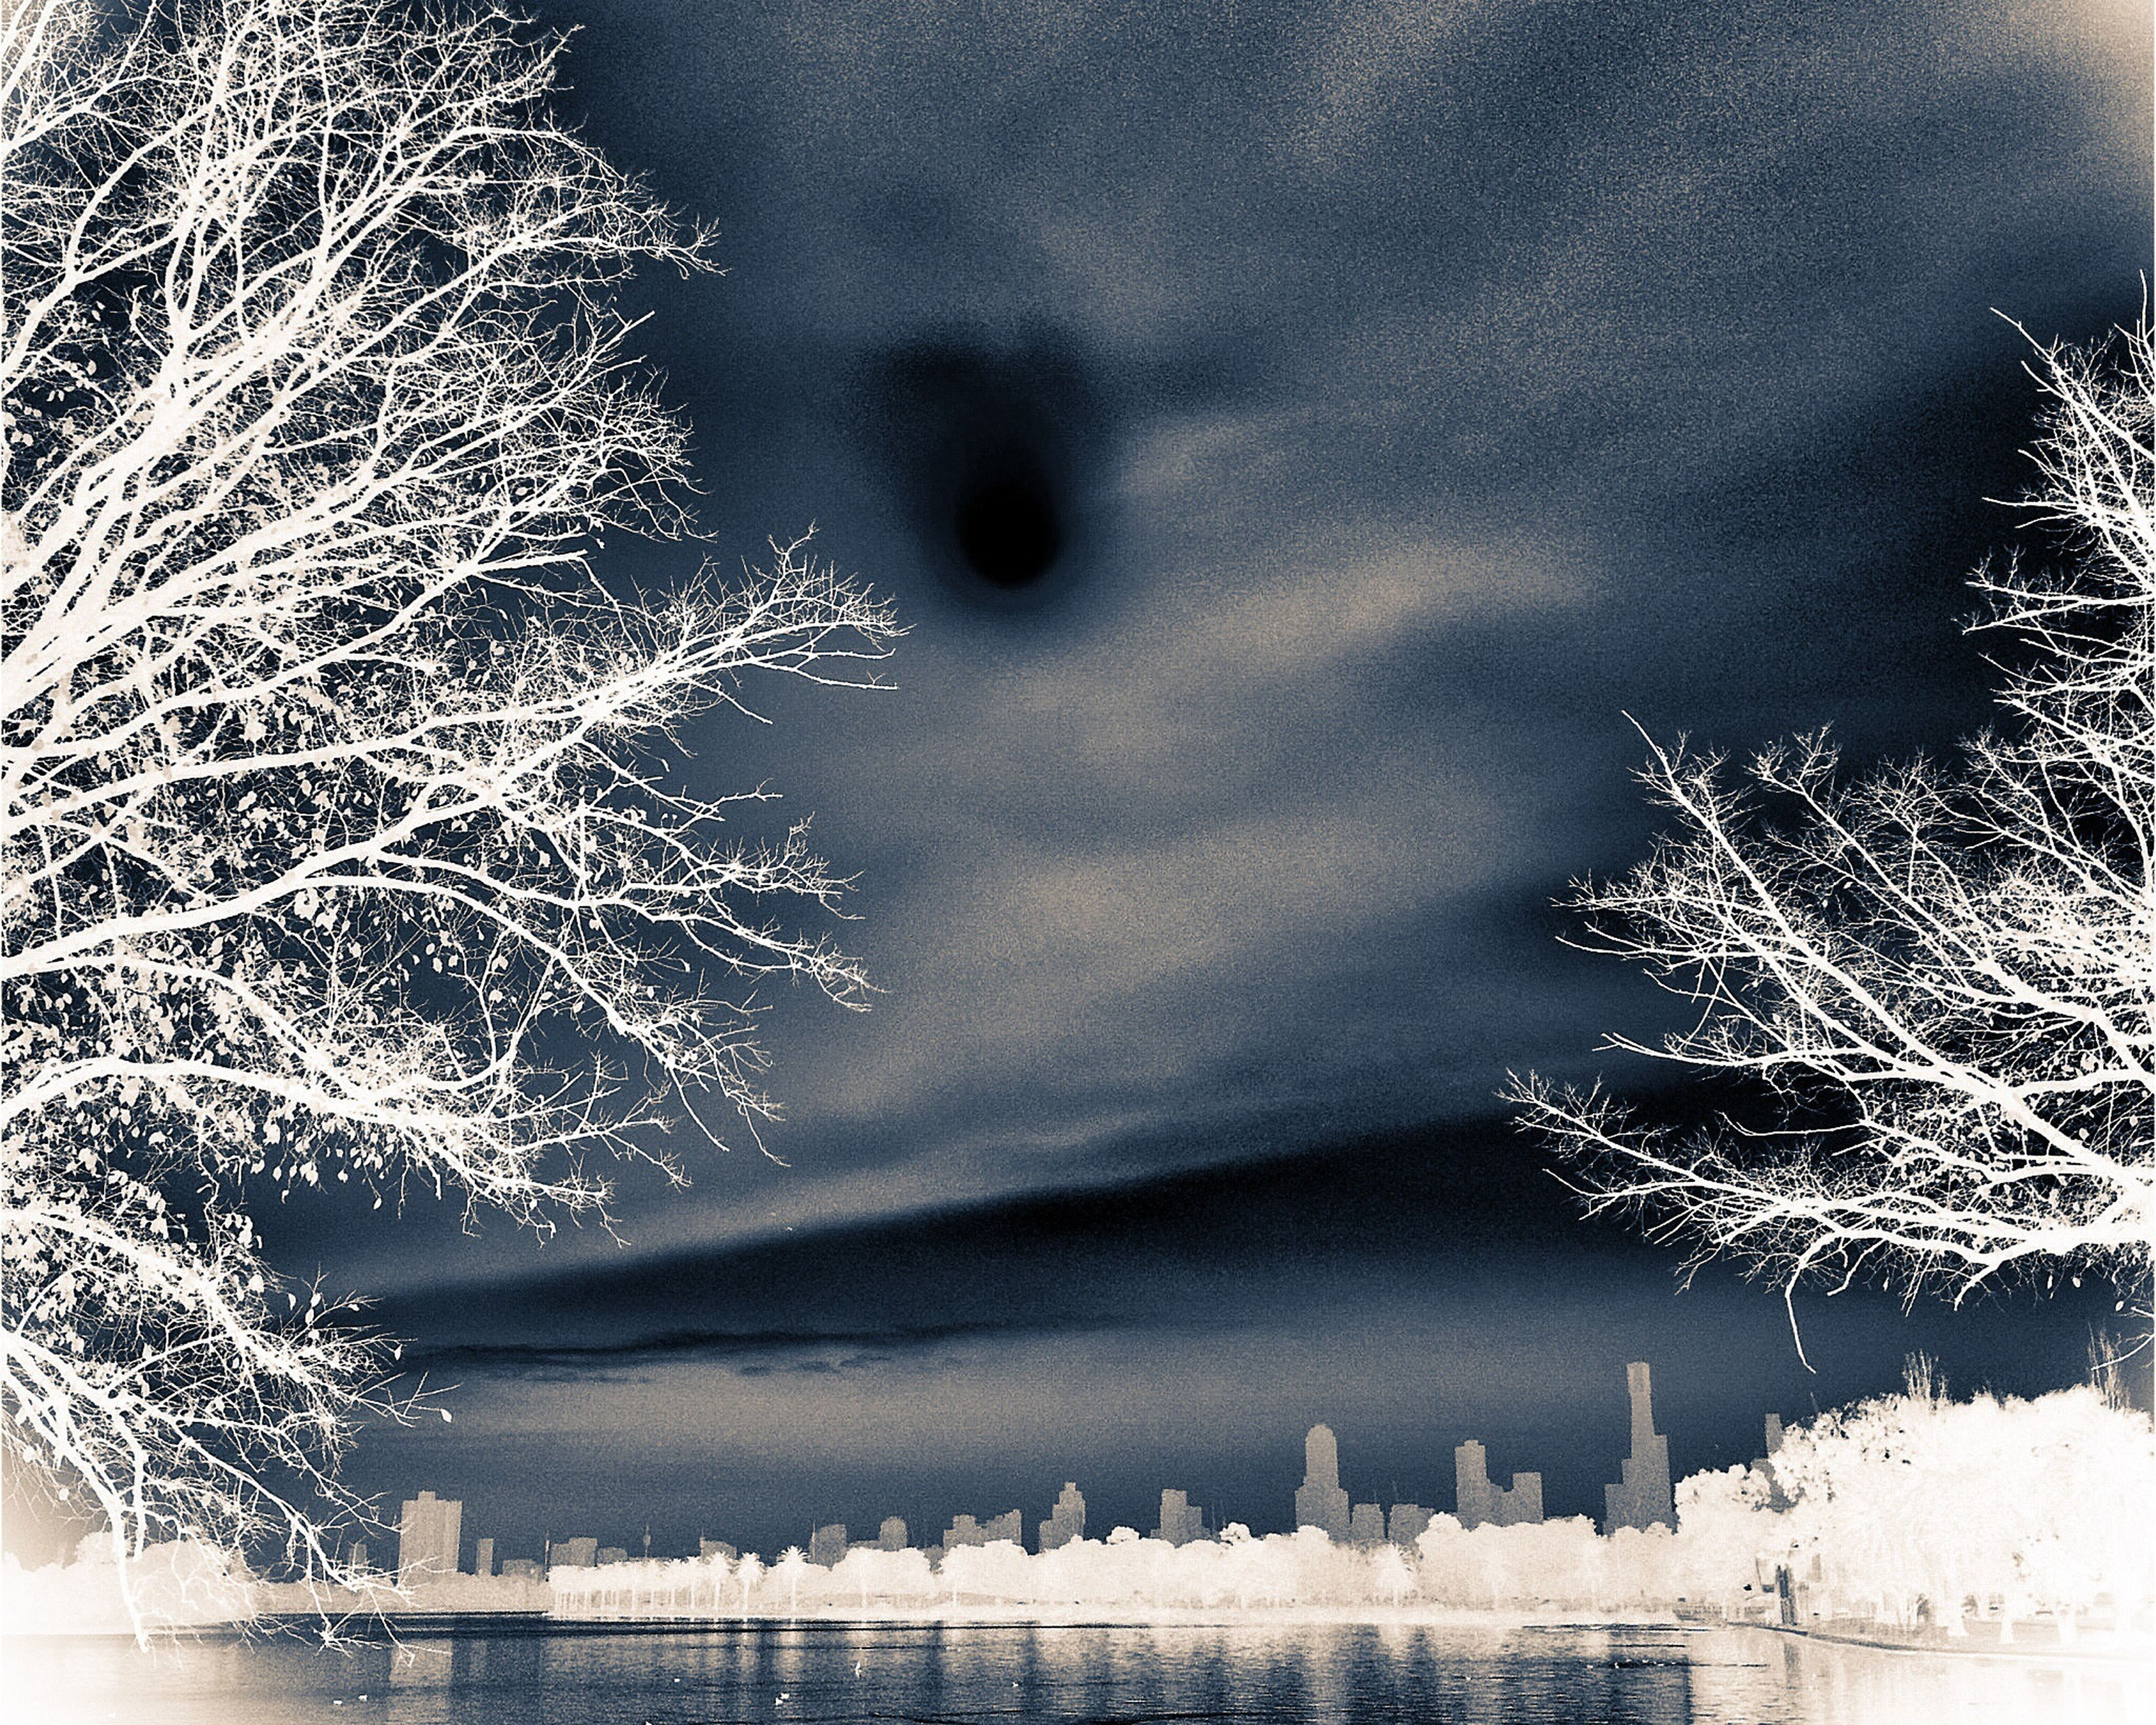 night, water, bare tree, illuminated, tree, sky, built structure, low angle view, building exterior, architecture, branch, waterfront, nature, weather, long exposure, motion, outdoors, reflection, no people, city